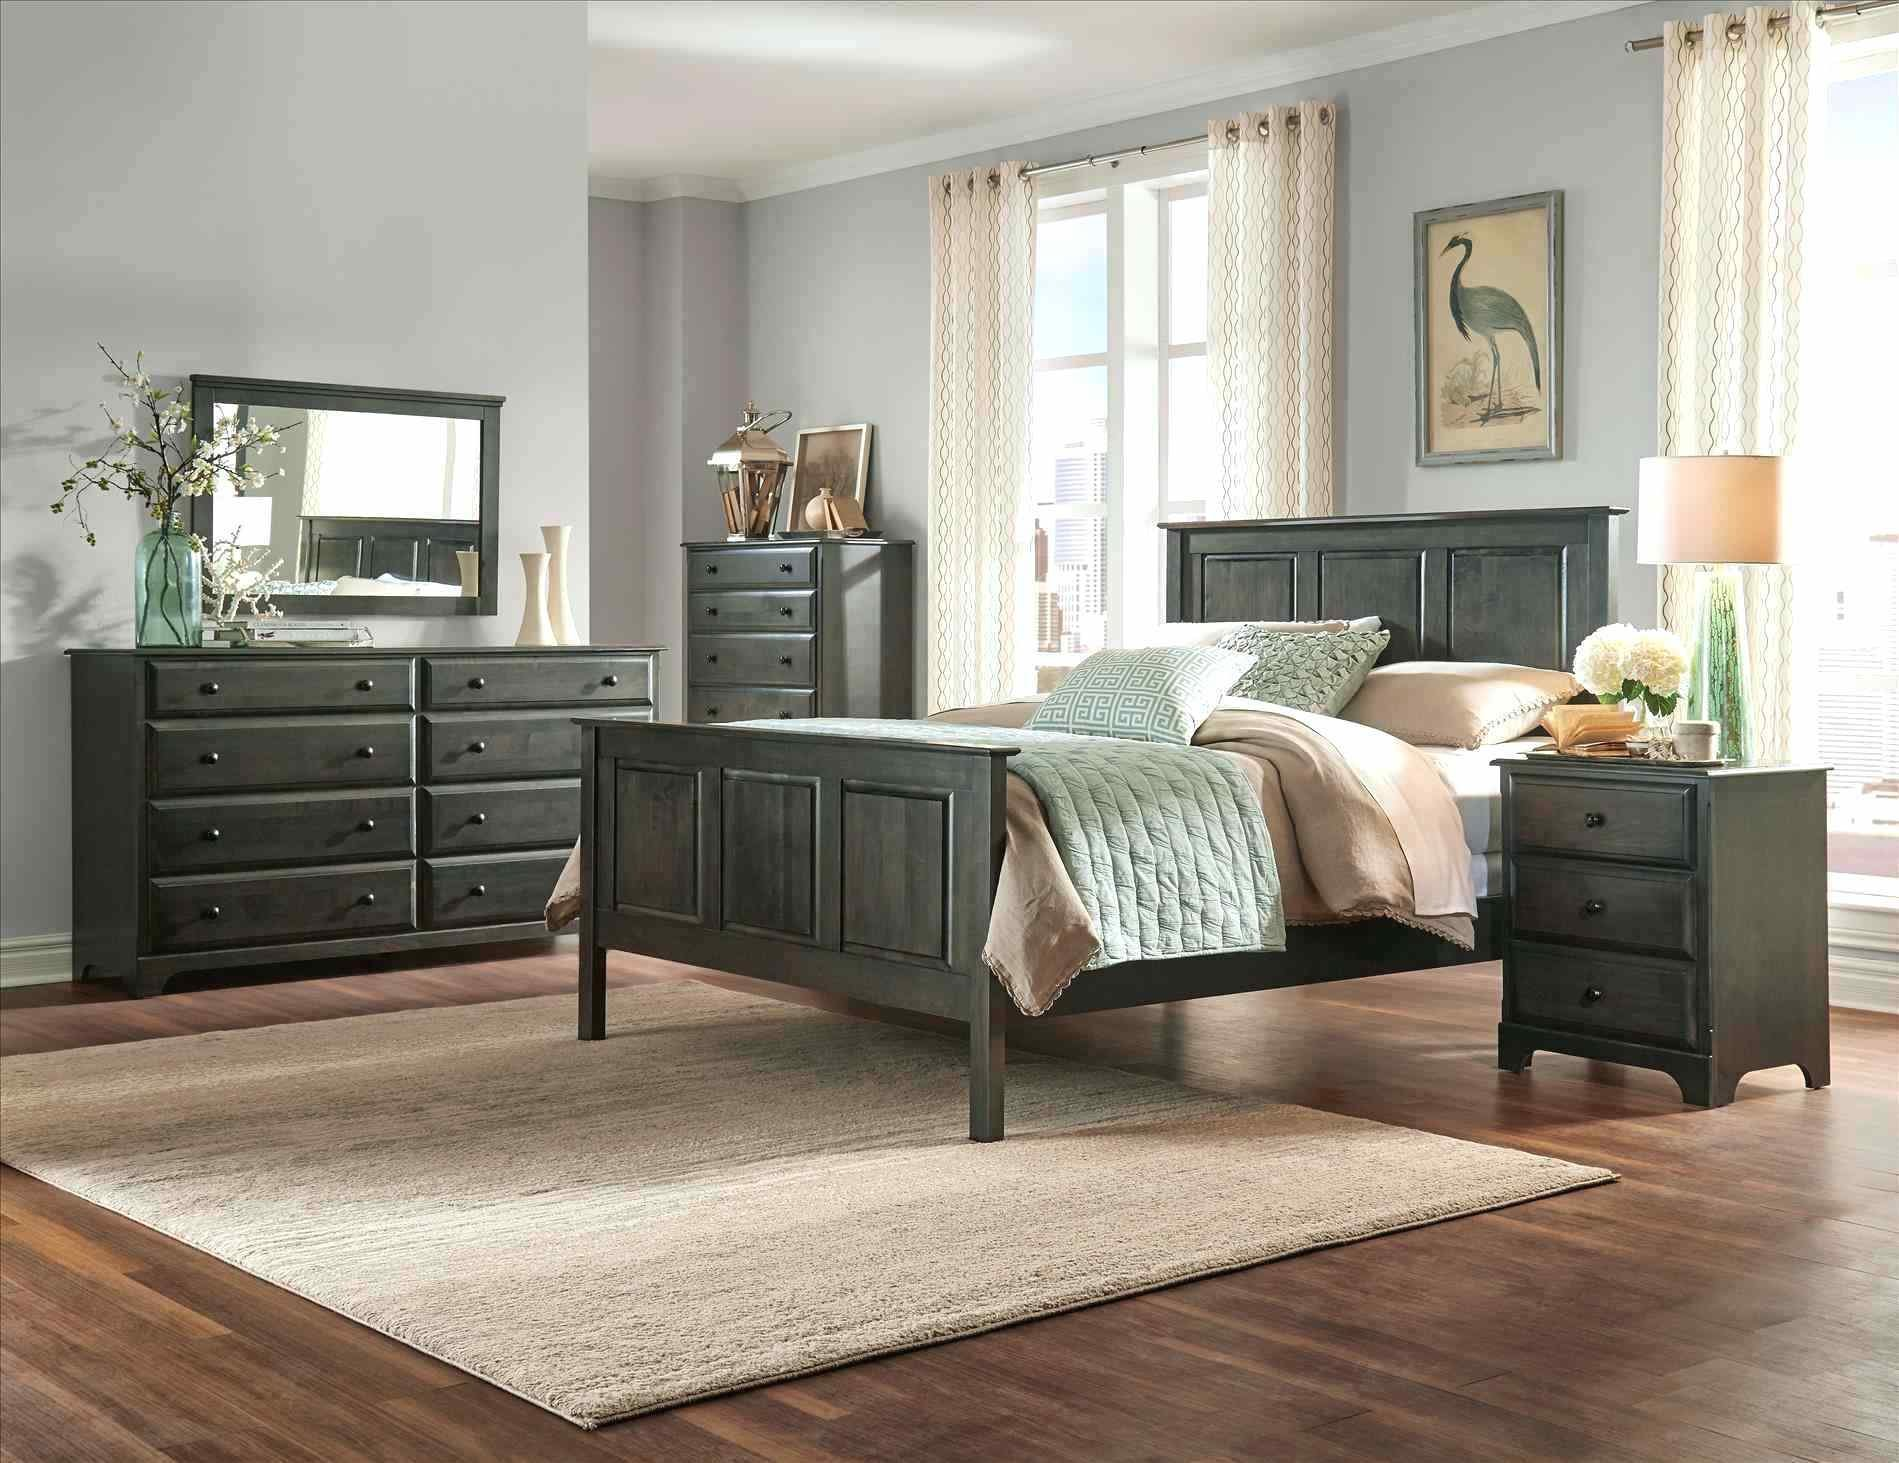 Best Reasonable Bedroom Furniture Reasonable Bedroom Furniture Sets Simple Interior Design For 37 With Pictures